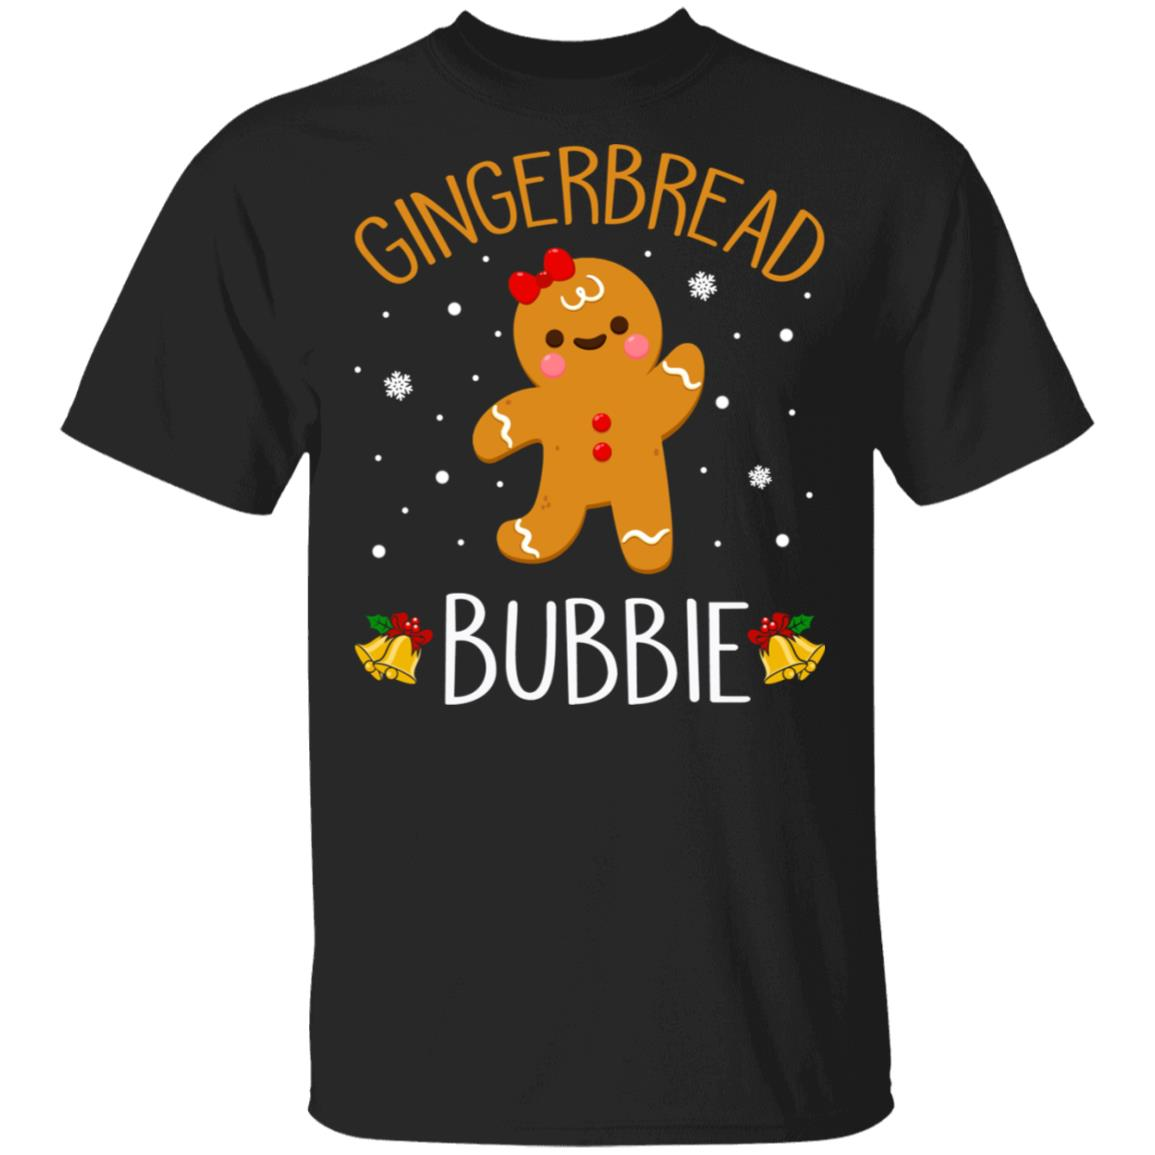 Xmas Gingerbread Men Bubbie Christmas Family Unisex Short Sleeve